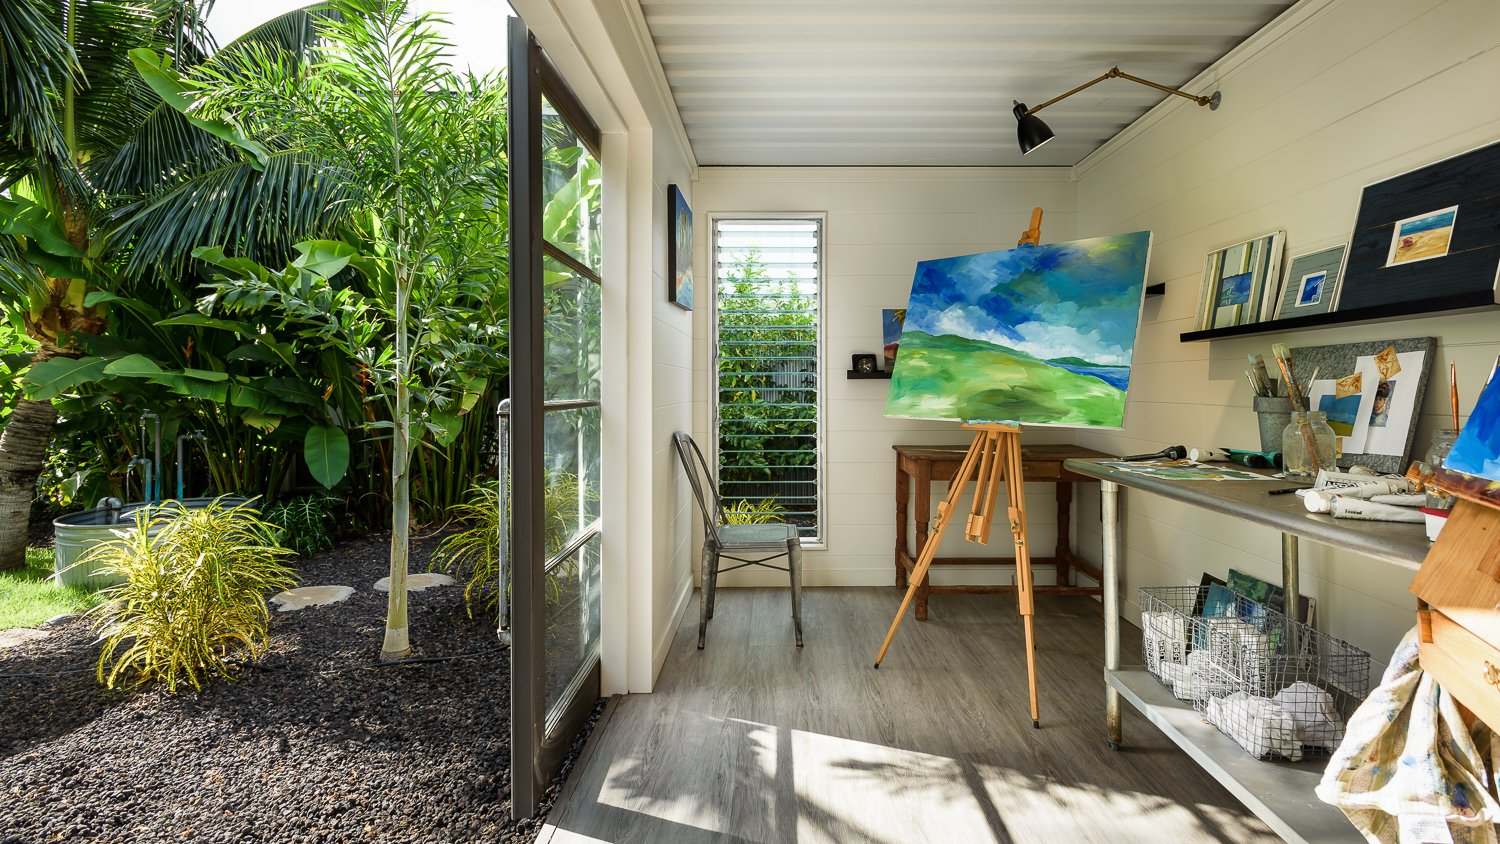 Shed & Studio and Living Space Room Type Detached private art studio with garden views made from a shipping container.   A Modern 1954 Plantation Style Home on Maui